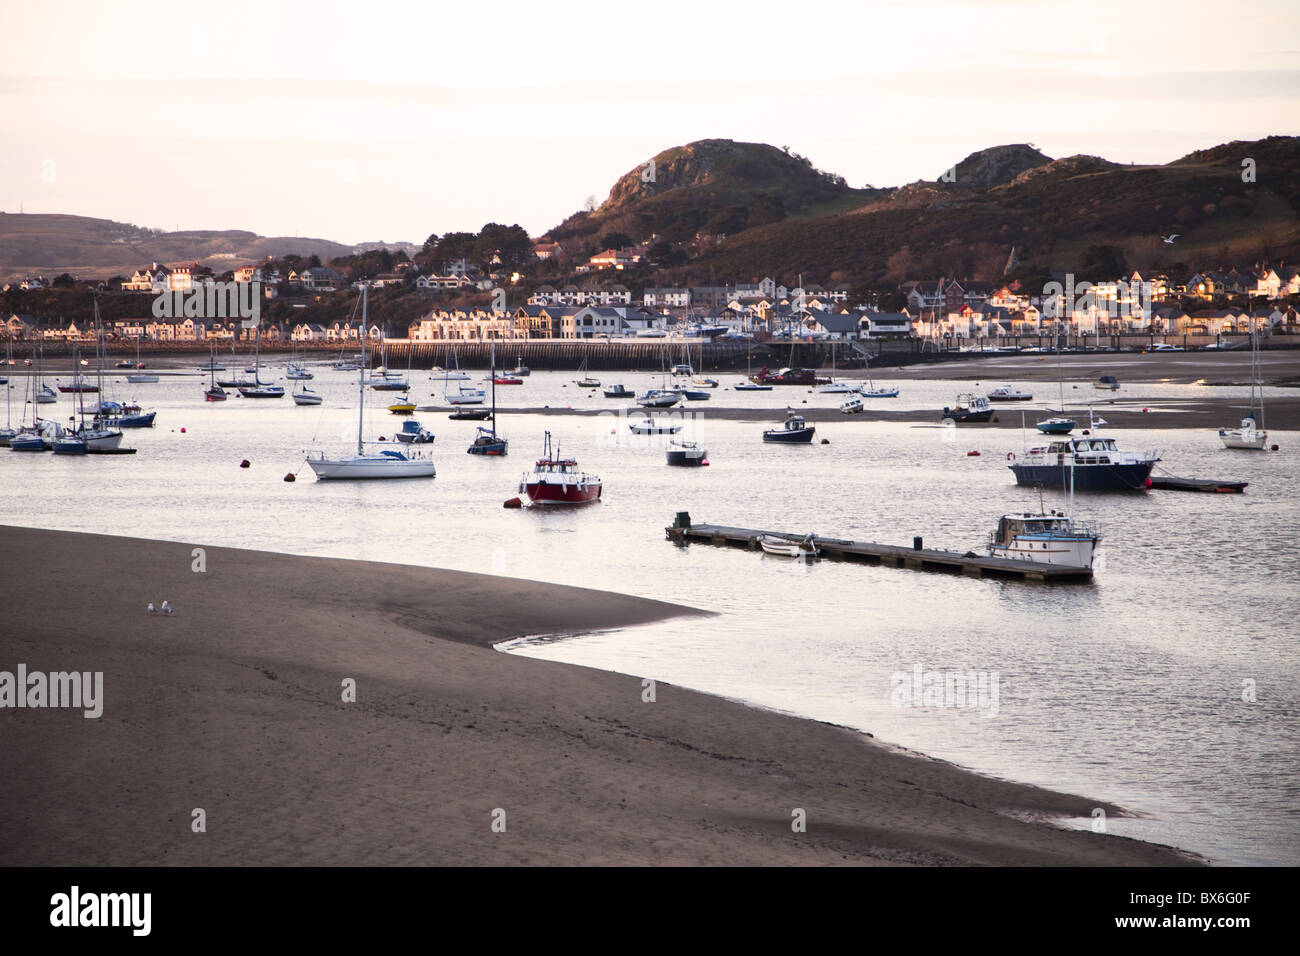 Port area of Conwy, Clwyd, Wales, United Kingdom, Europe - Stock Image